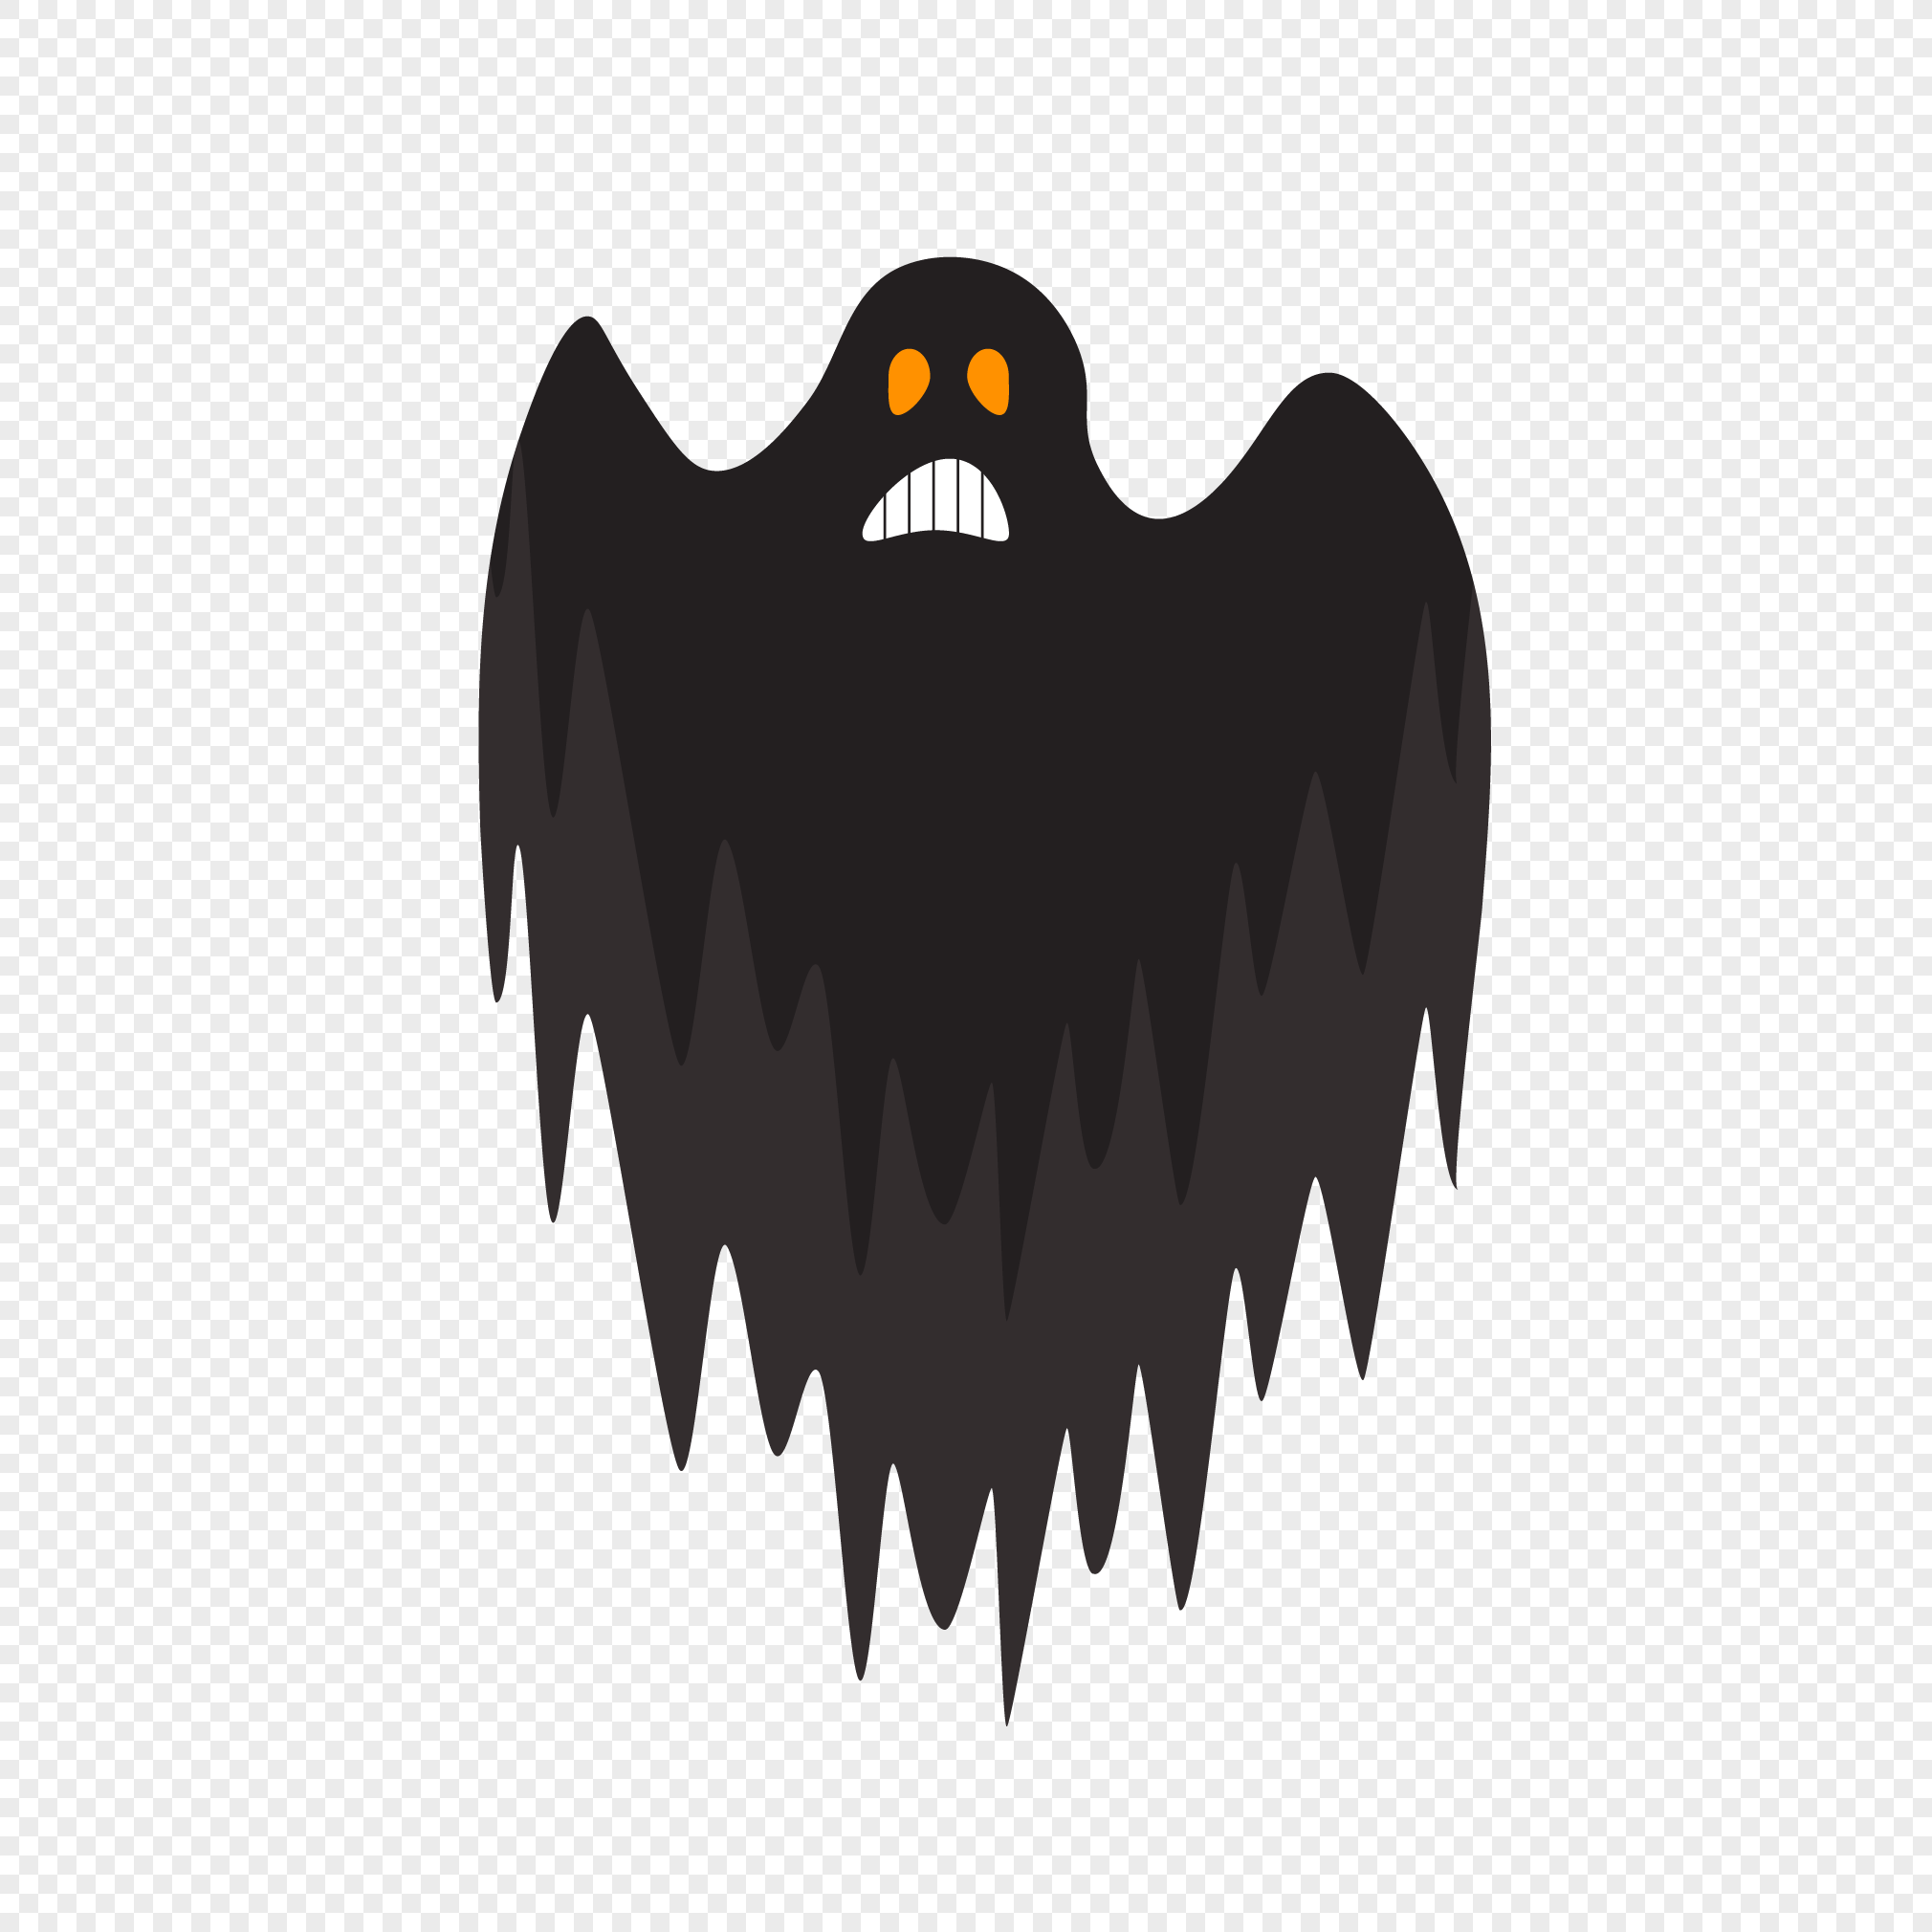 halloween vector material png image picture free download